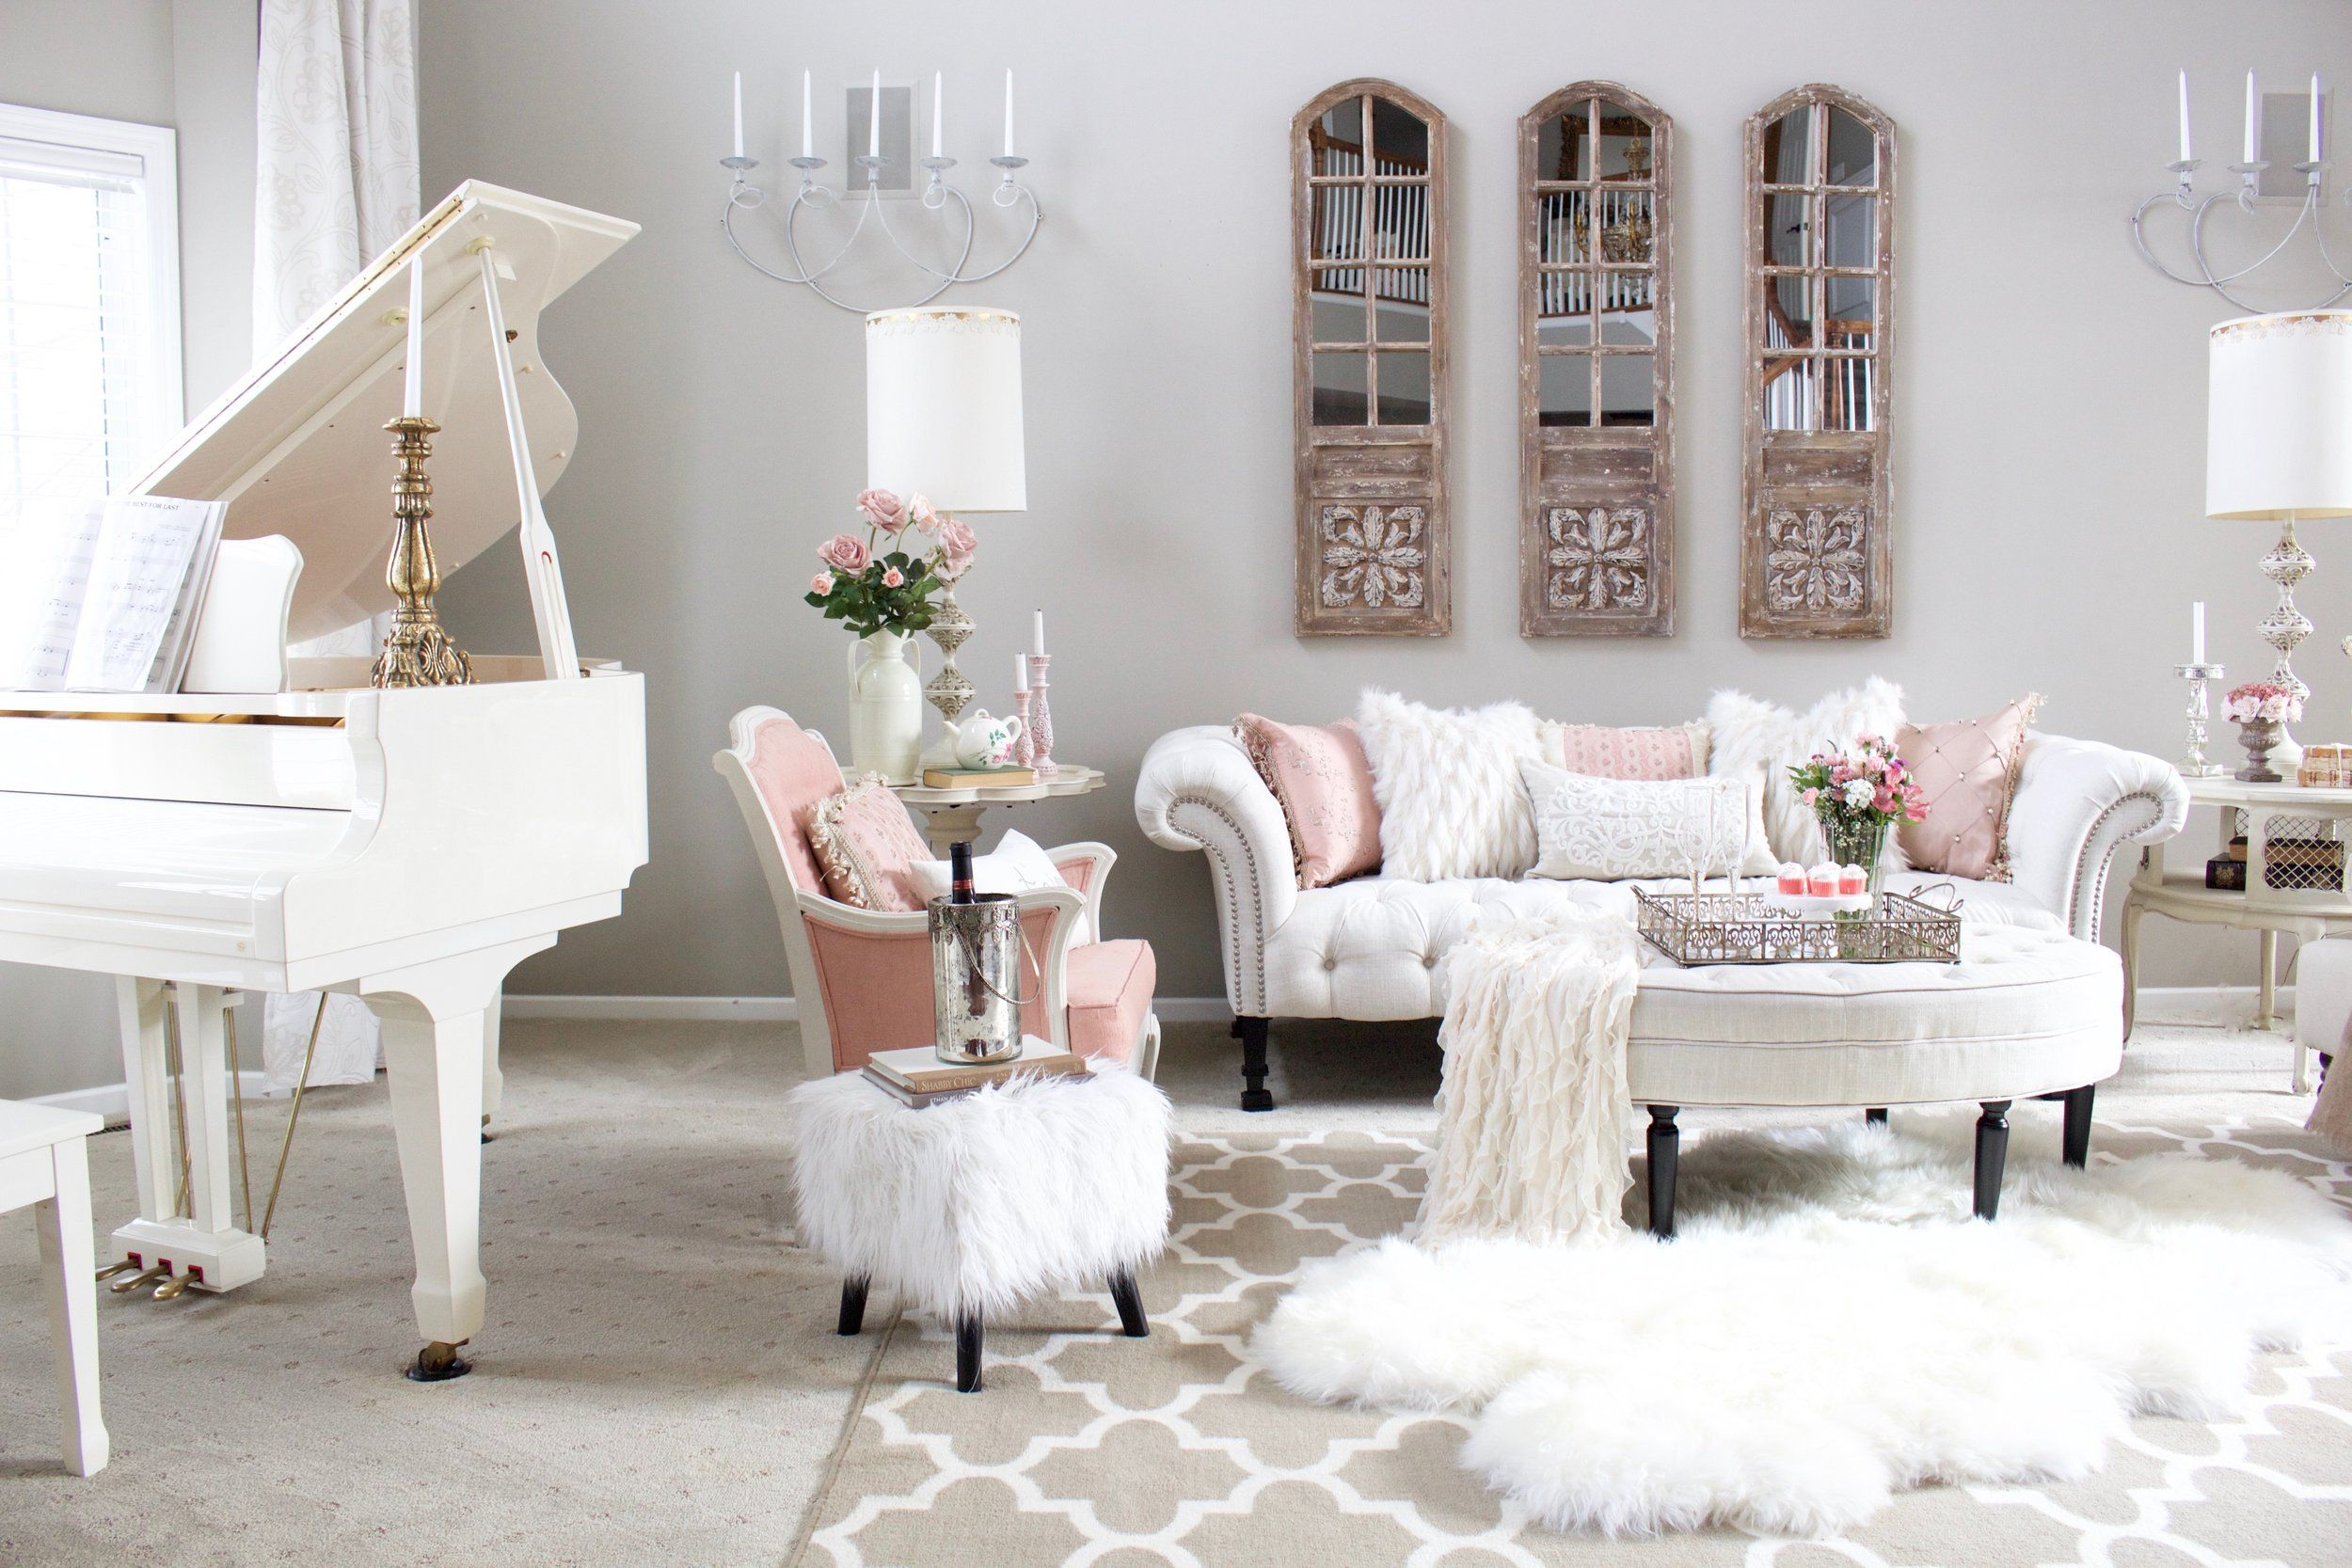 Valentines Day Decor | The Blog-Styled with Lace | Pinterest | Babe ...